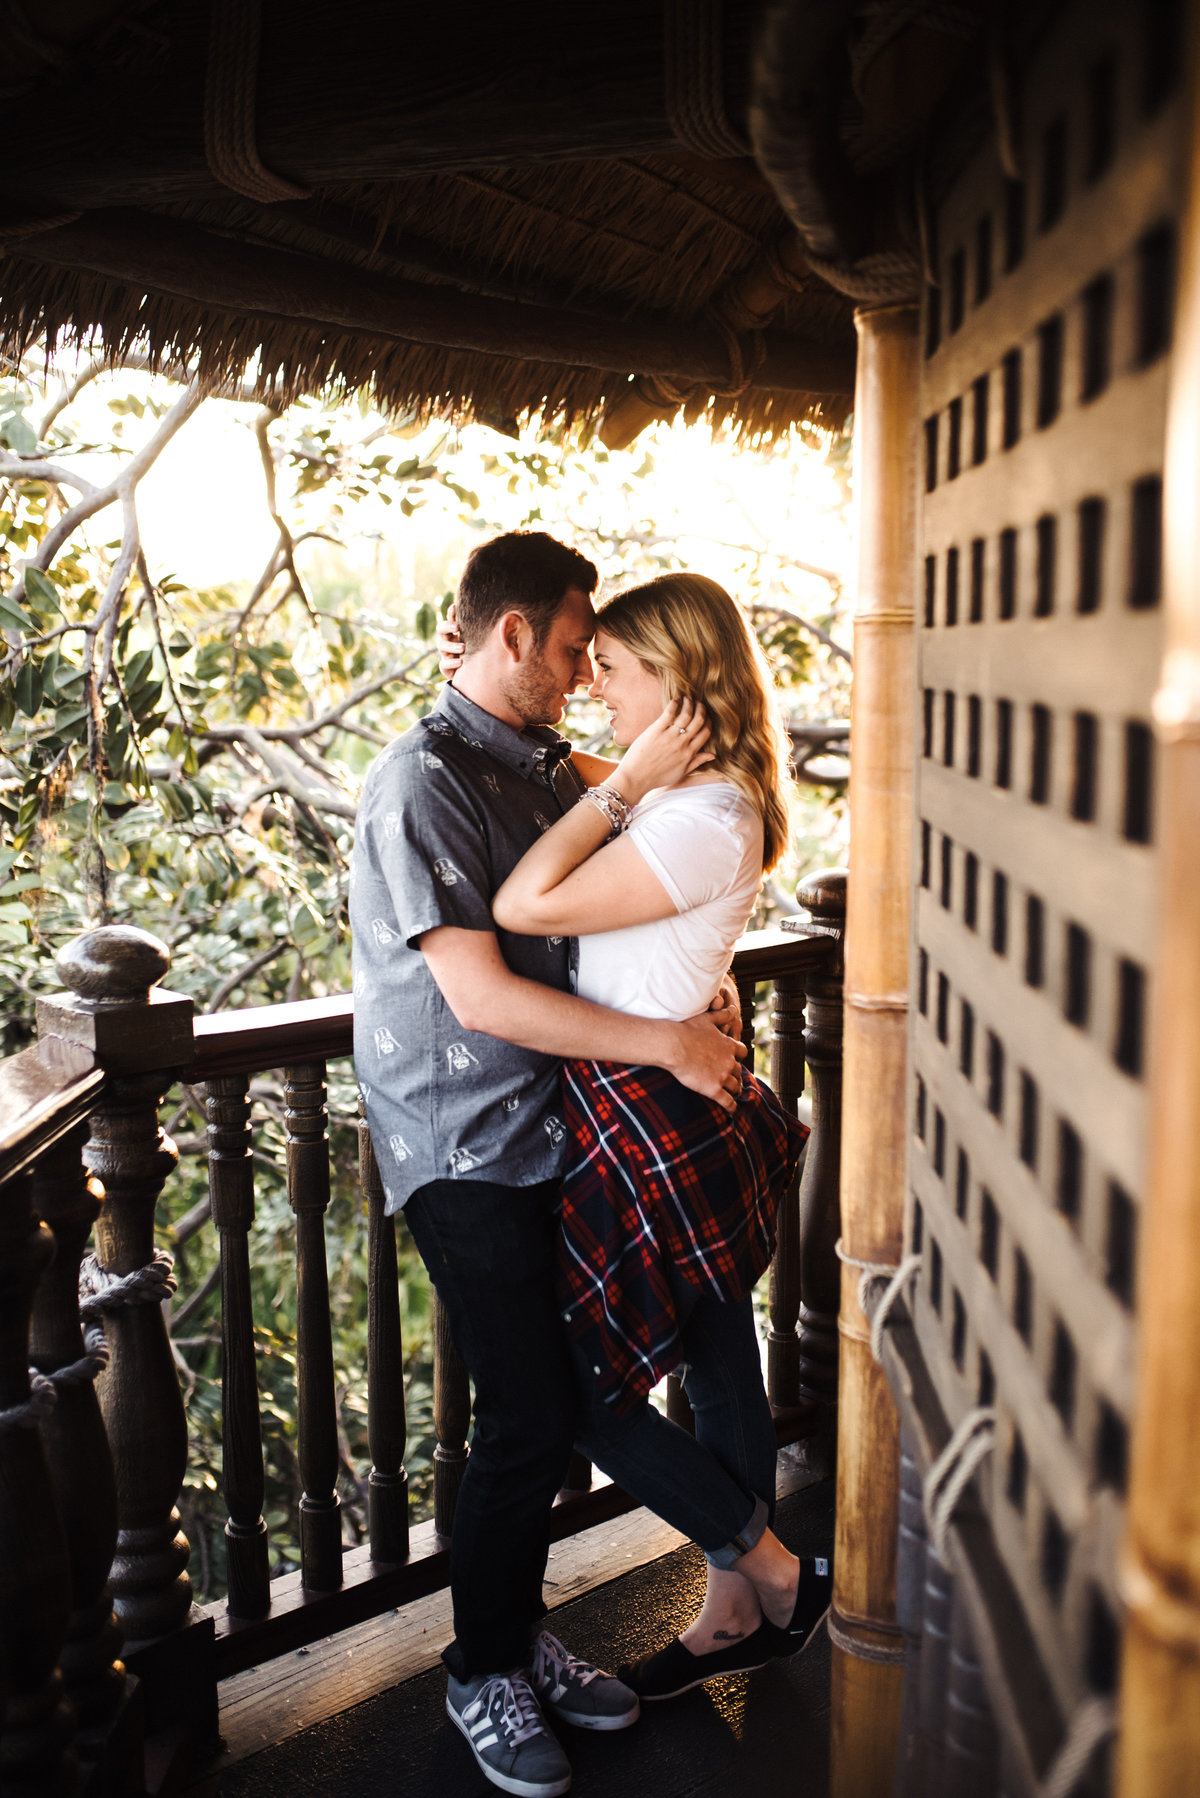 Ally & Brett's Disney Engagement Session (223 of 243)